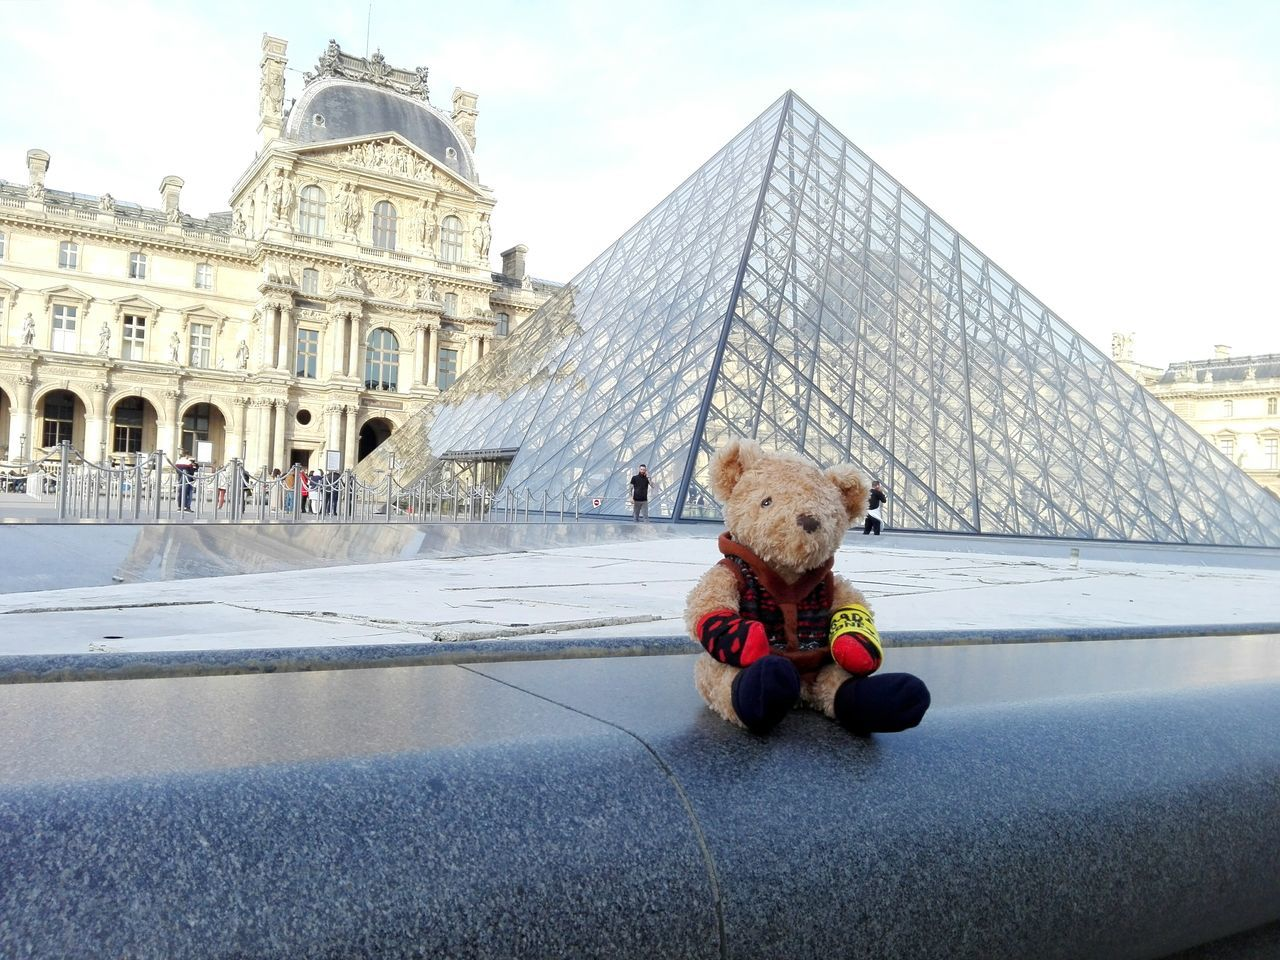 Happy bear at Louvre Paris Teddy Bear Fluffy Toy Toy Photography Toys Child Childhood Childhood Memories Paris Louvre France City Light And Shadow Architecture Love Outdoors Pyramid Pyramide Du Louvre Happy Happiness Night Photography Photo City Life Travel EyeEmNewHere Long Goodbye Break The Mold Art Is Everywhere TCPM Visual Feast Neighborhood Map The Street Photographer - 2017 EyeEm Awards The Architect - 2017 EyeEm Awards The Great Outdoors - 2017 EyeEm Awards The Photojournalist - 2017 EyeEm Awards The Portraitist - 2017 EyeEm Awards BYOPaper! Live For The Story